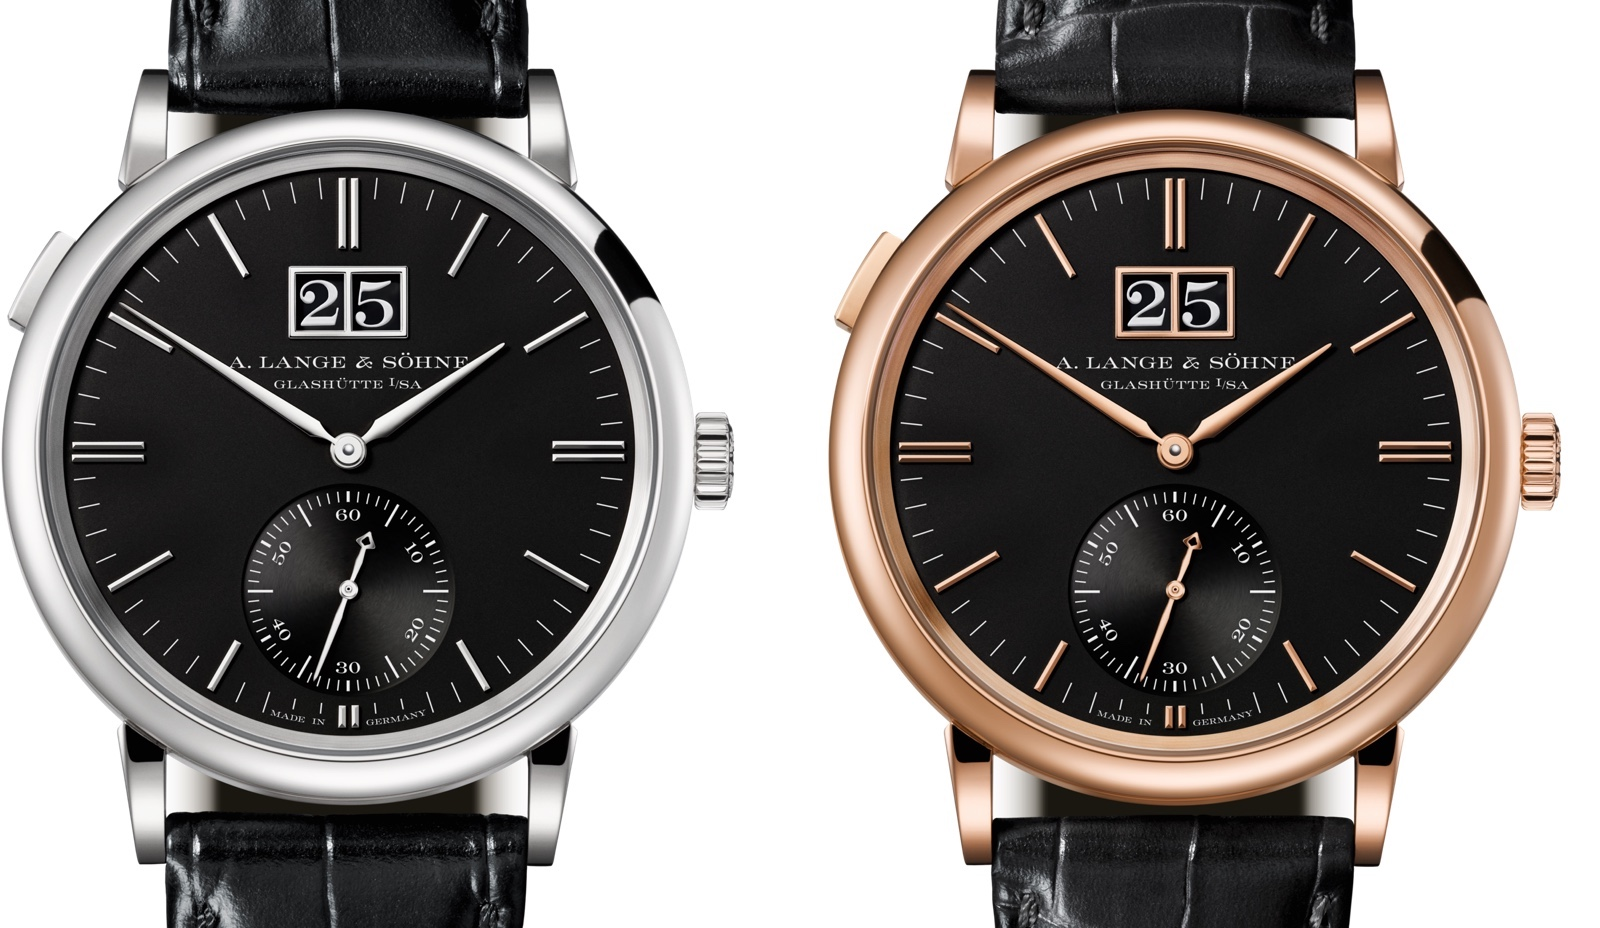 A. Lange & Sohne Saxonia Outsized Date SIHH 2018